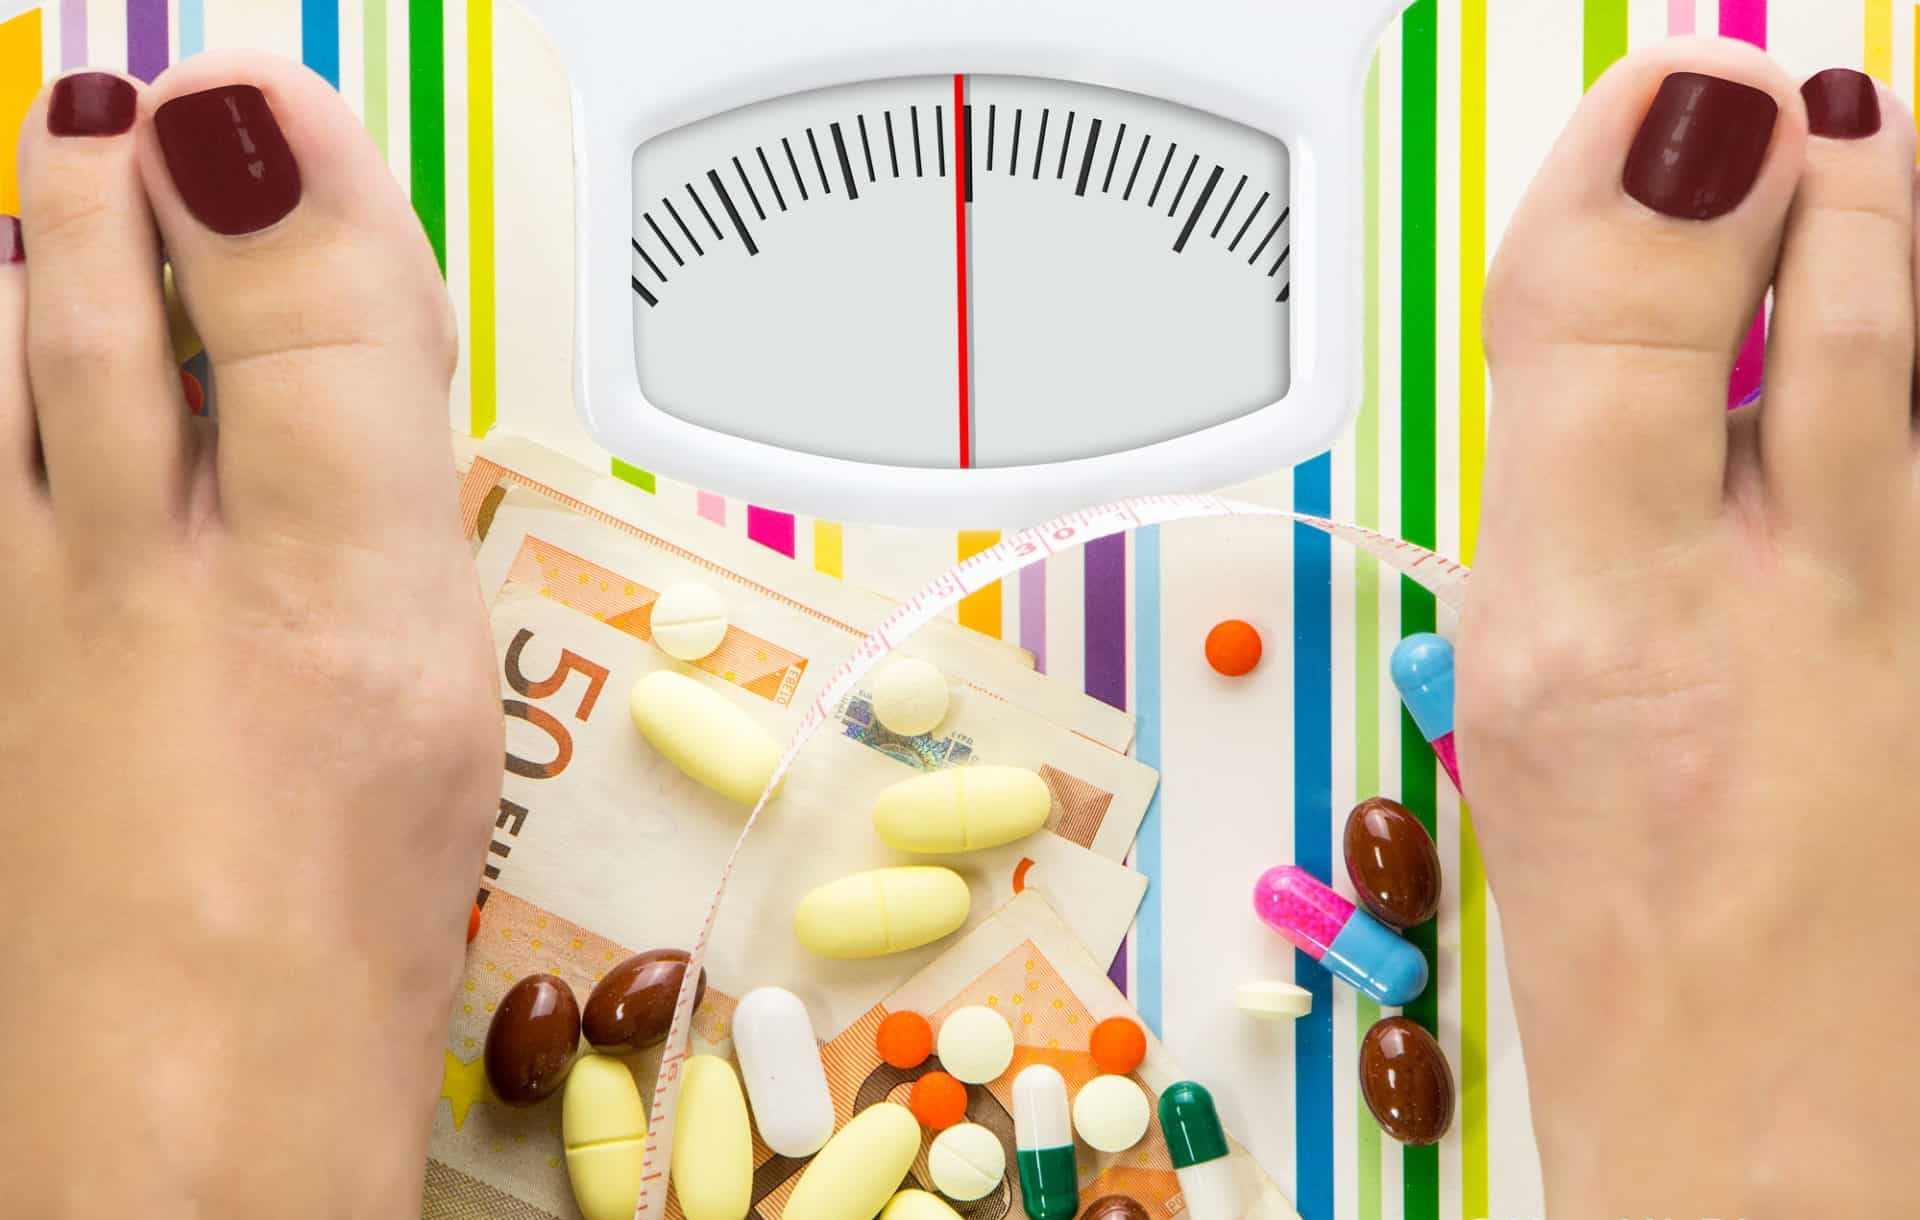 Medication for Weight Loss